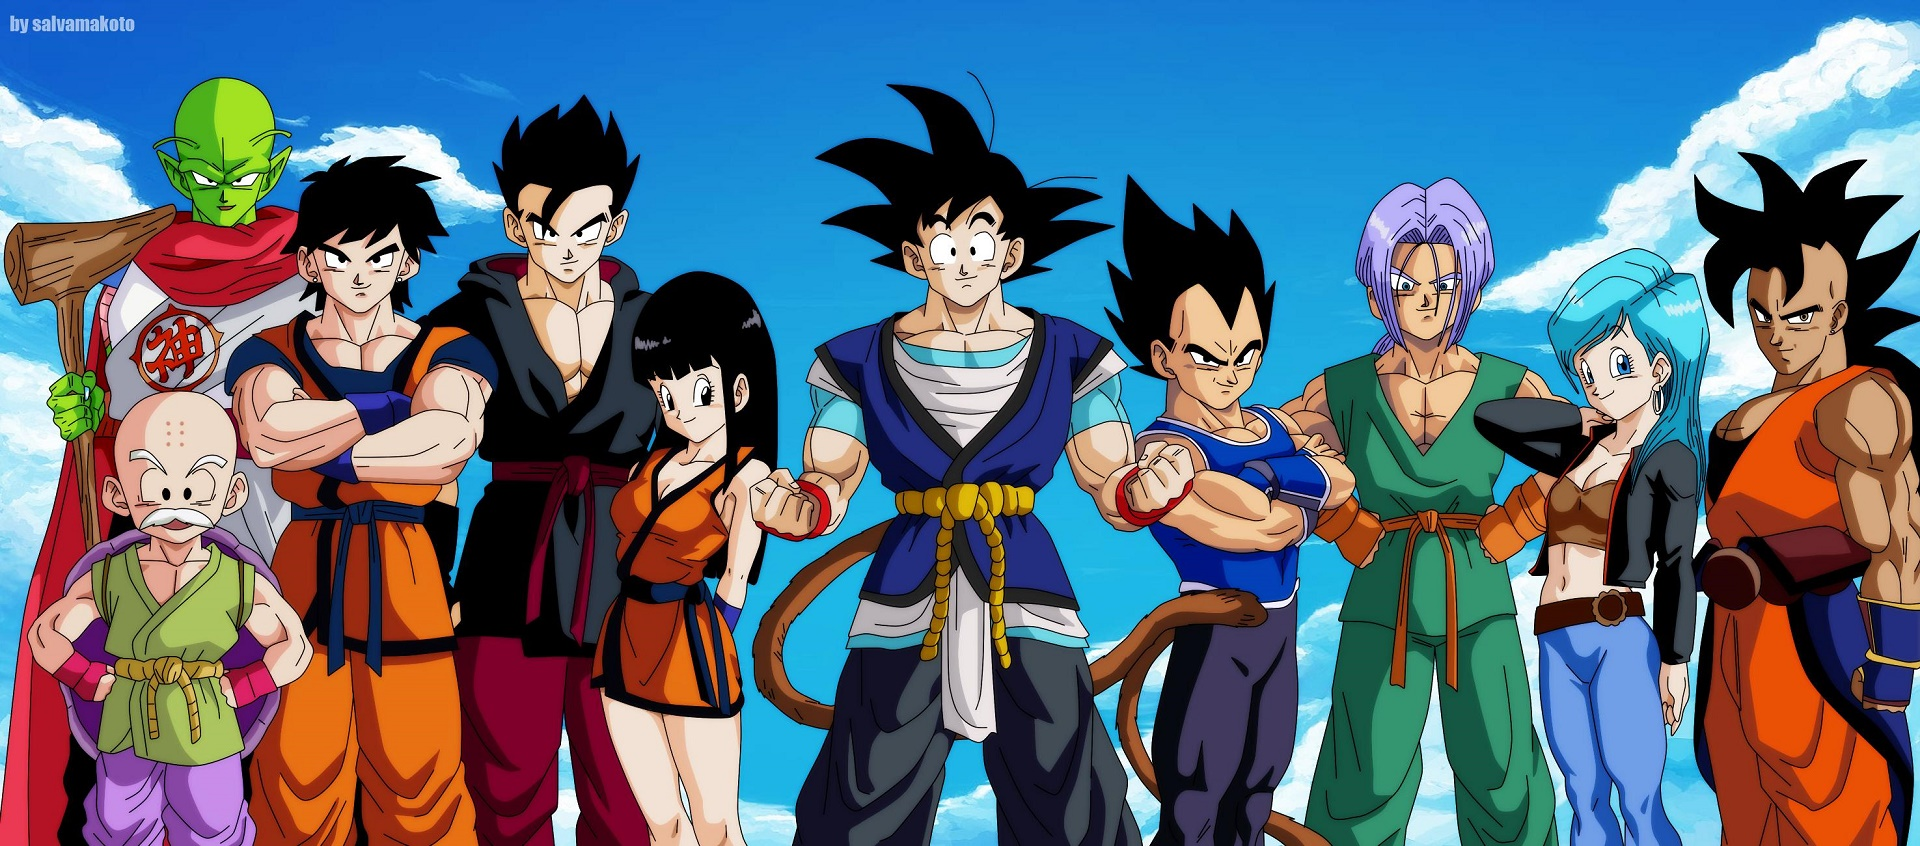 z fighters wallpaper dbs - photo #10